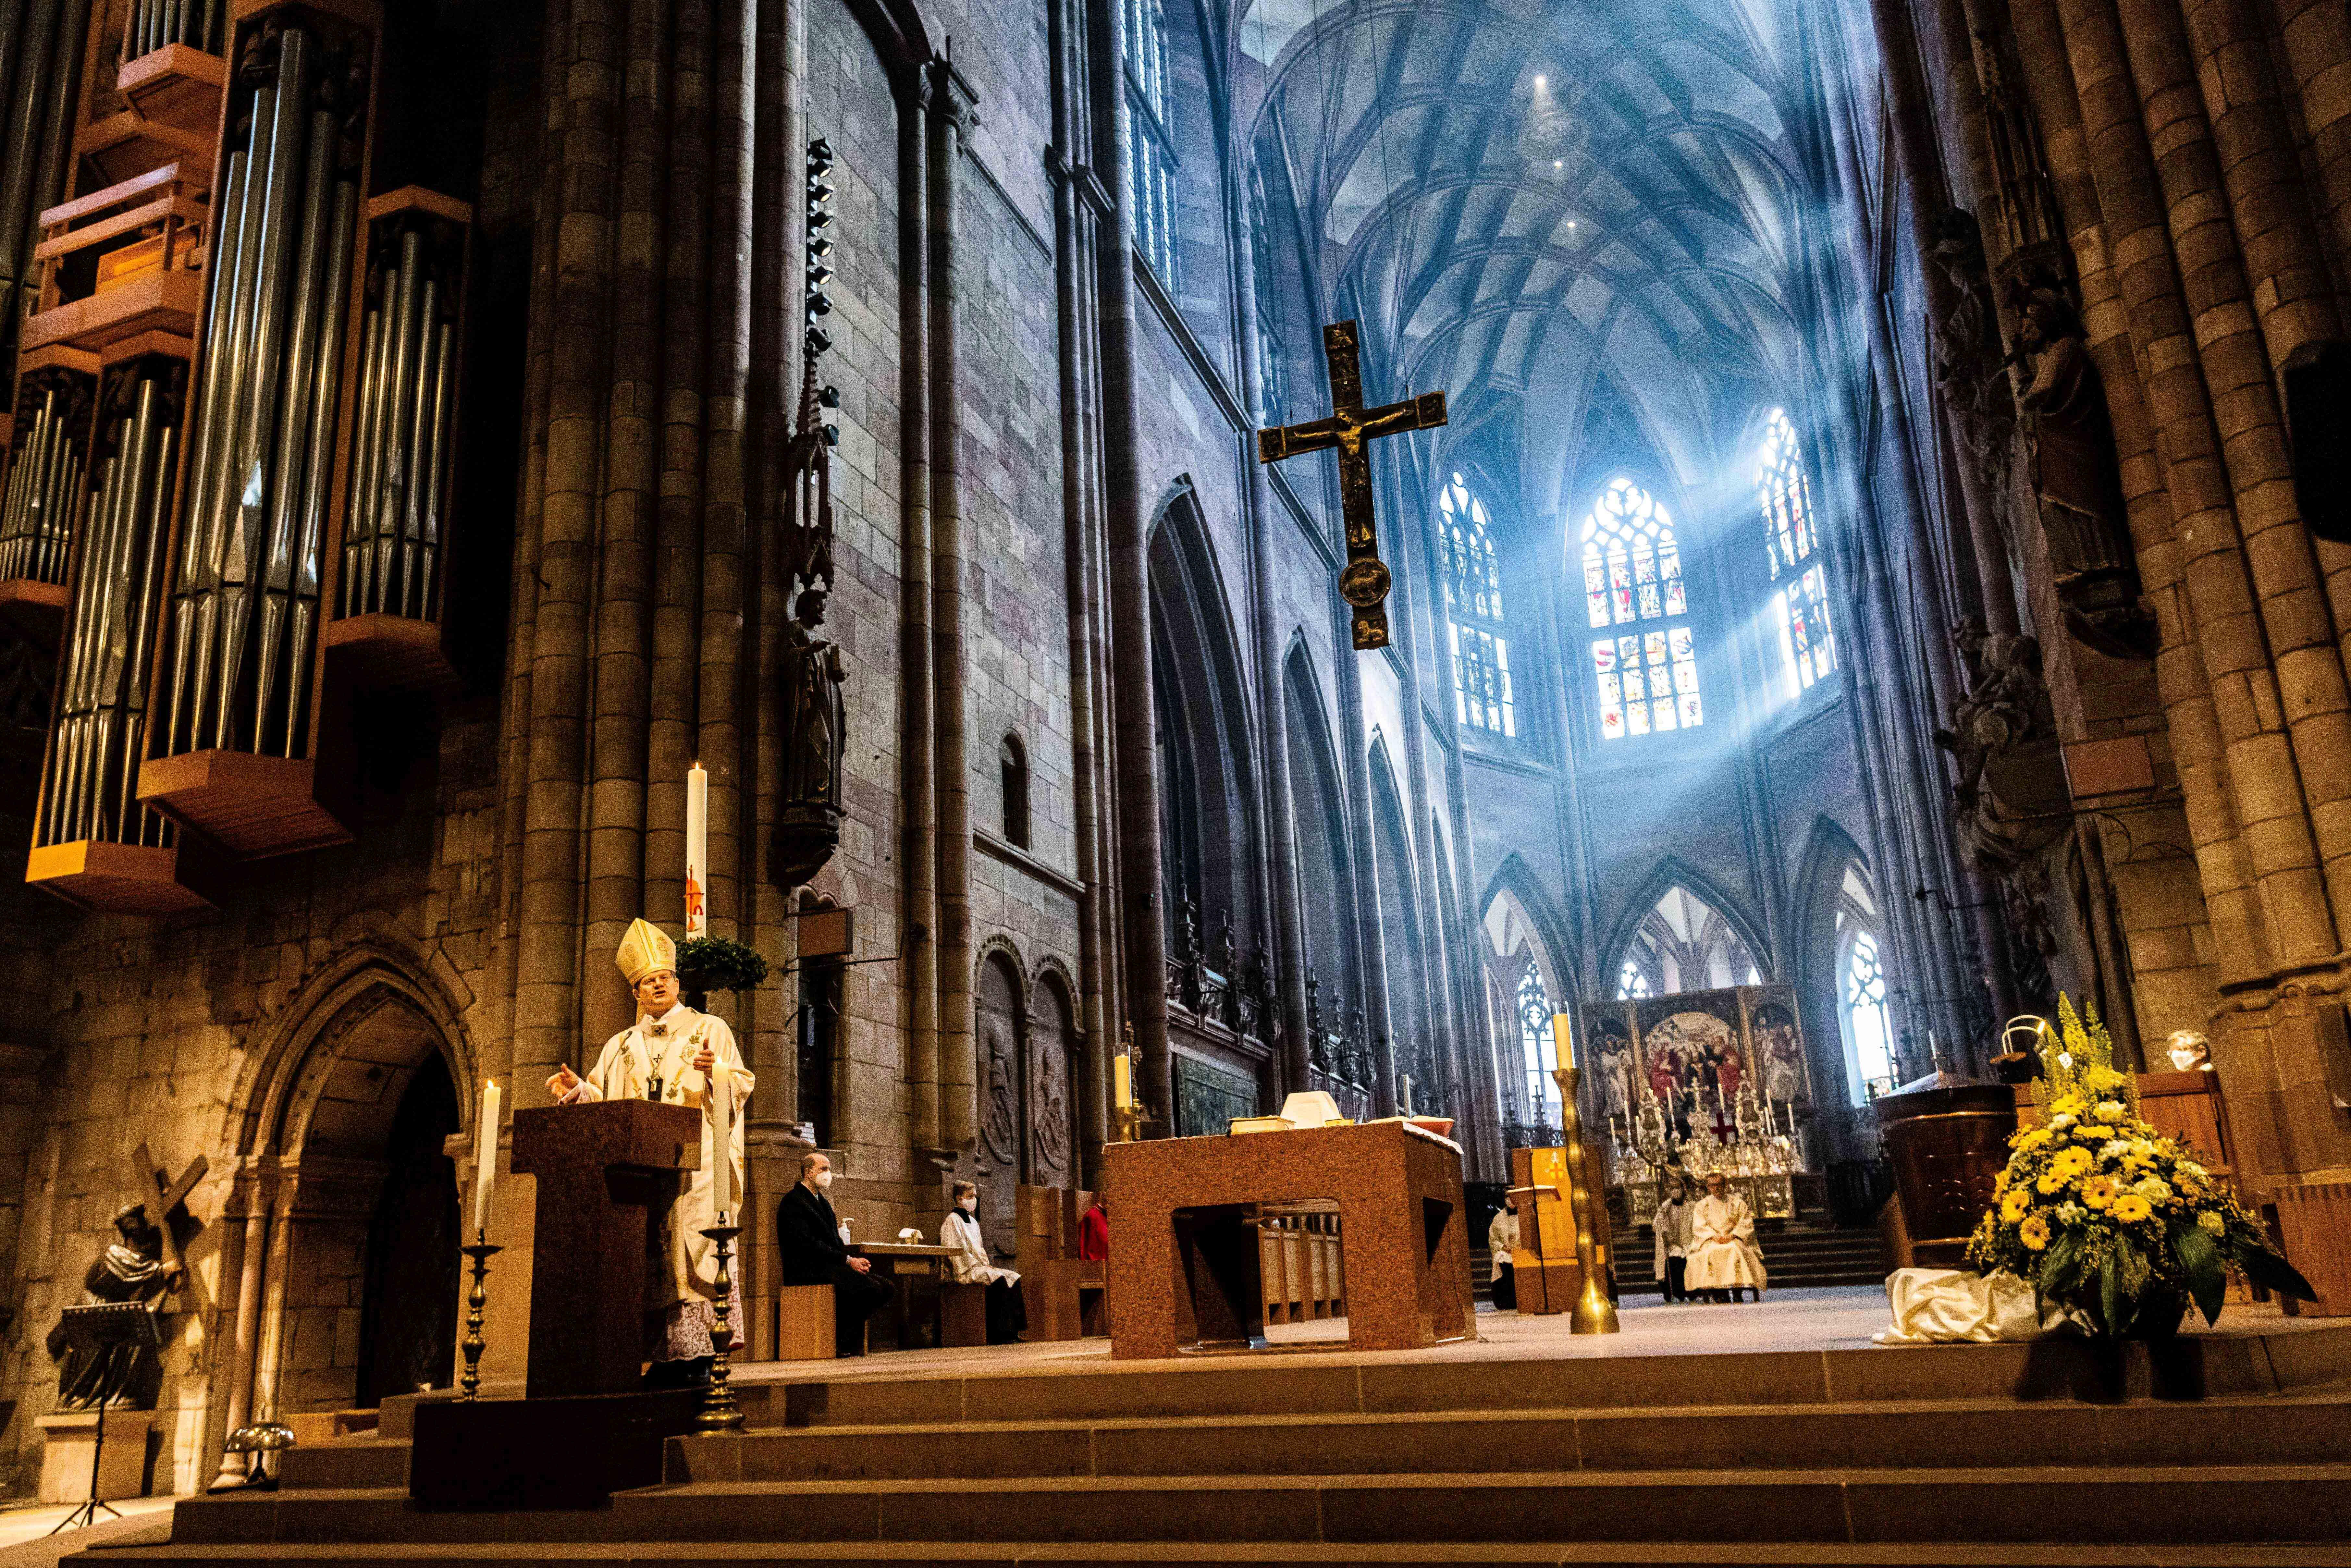 Archbishop Stephan Burger speaks to the faithful during the Pontifical Mass for Easter Sunday in Freiburg Cathedral in Freiburg, Germany, Sunday, April 4, 2021.